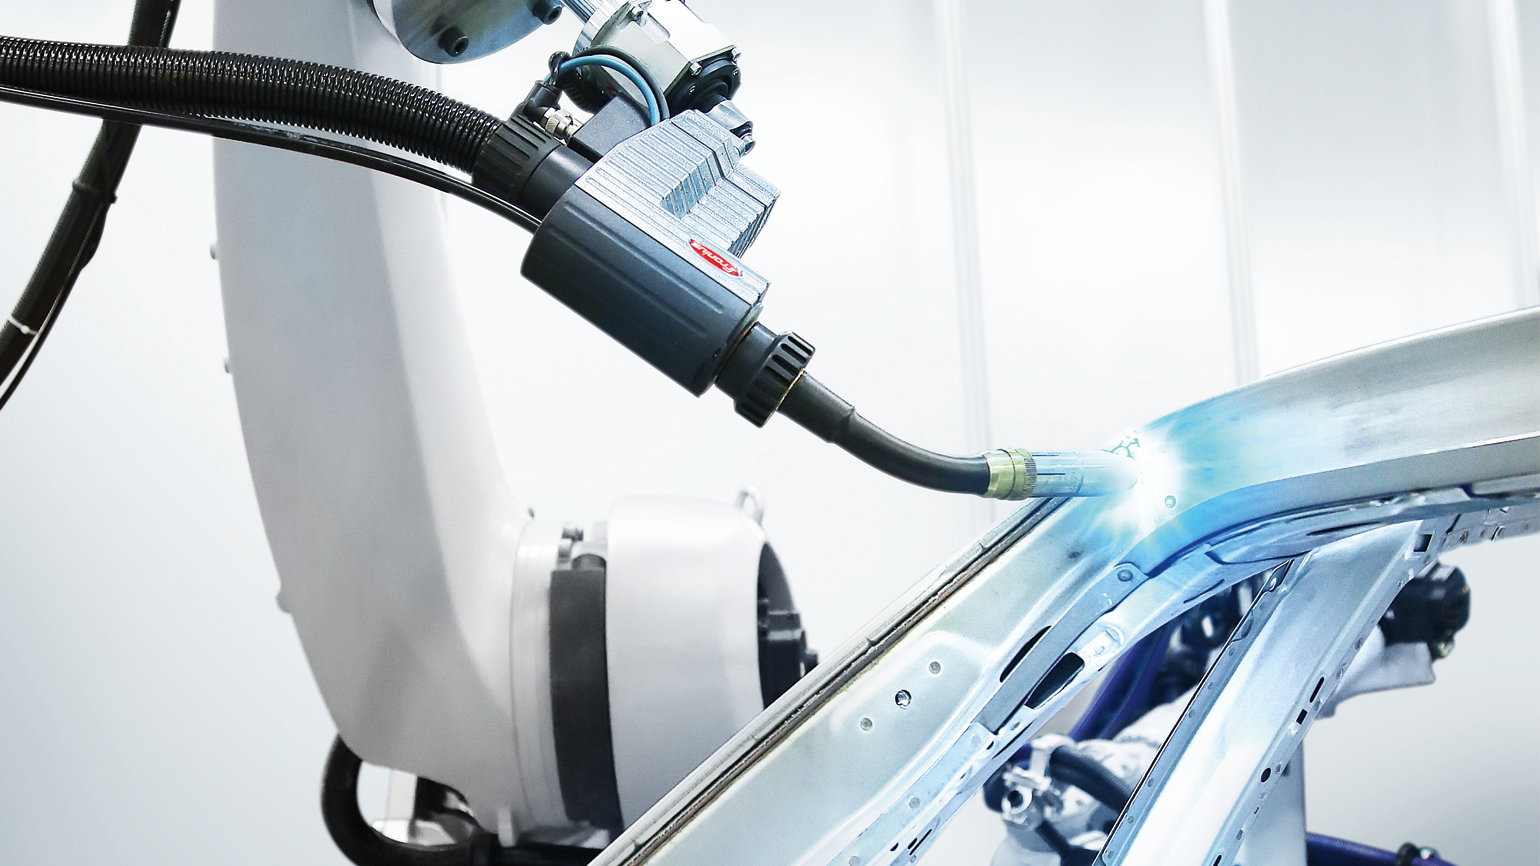 Cmt Welding Processes Technology Fronius Mig Process Diagram Extremely Low Heat Input And An Exceptionally Stable Arc Set Apart From Conventional The Cold Metal Transfer